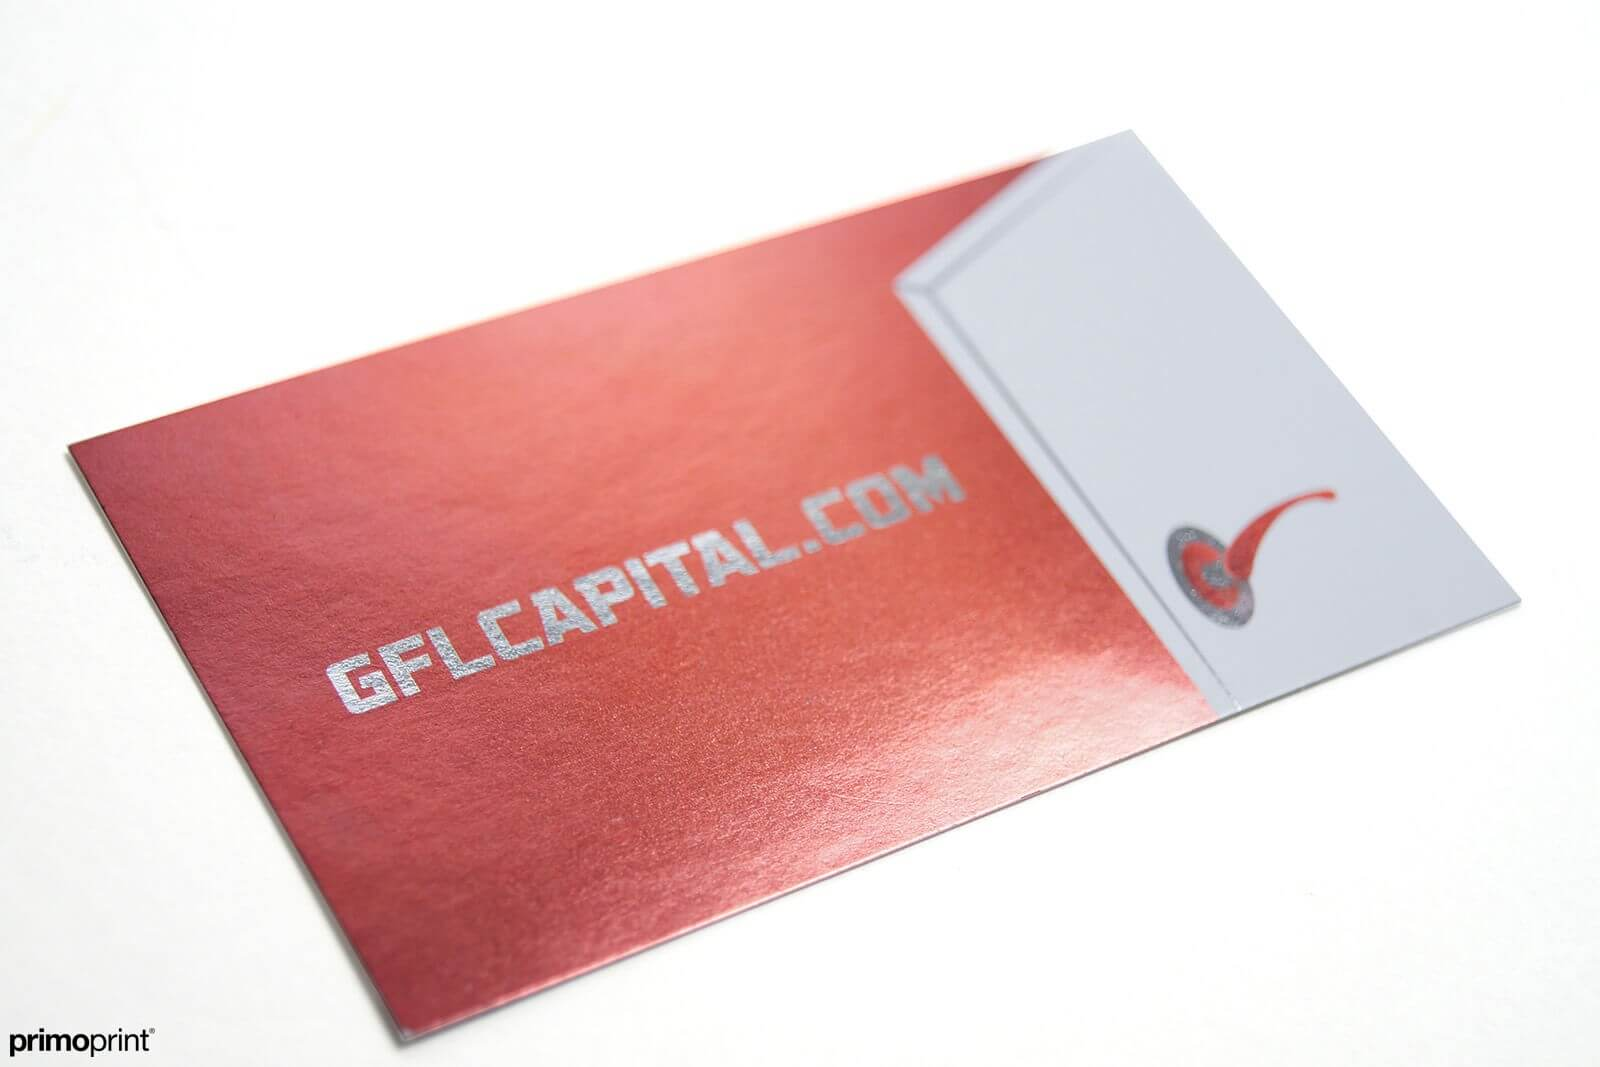 Spice up your business card by selecting inline foil business card printed by Primoprint.